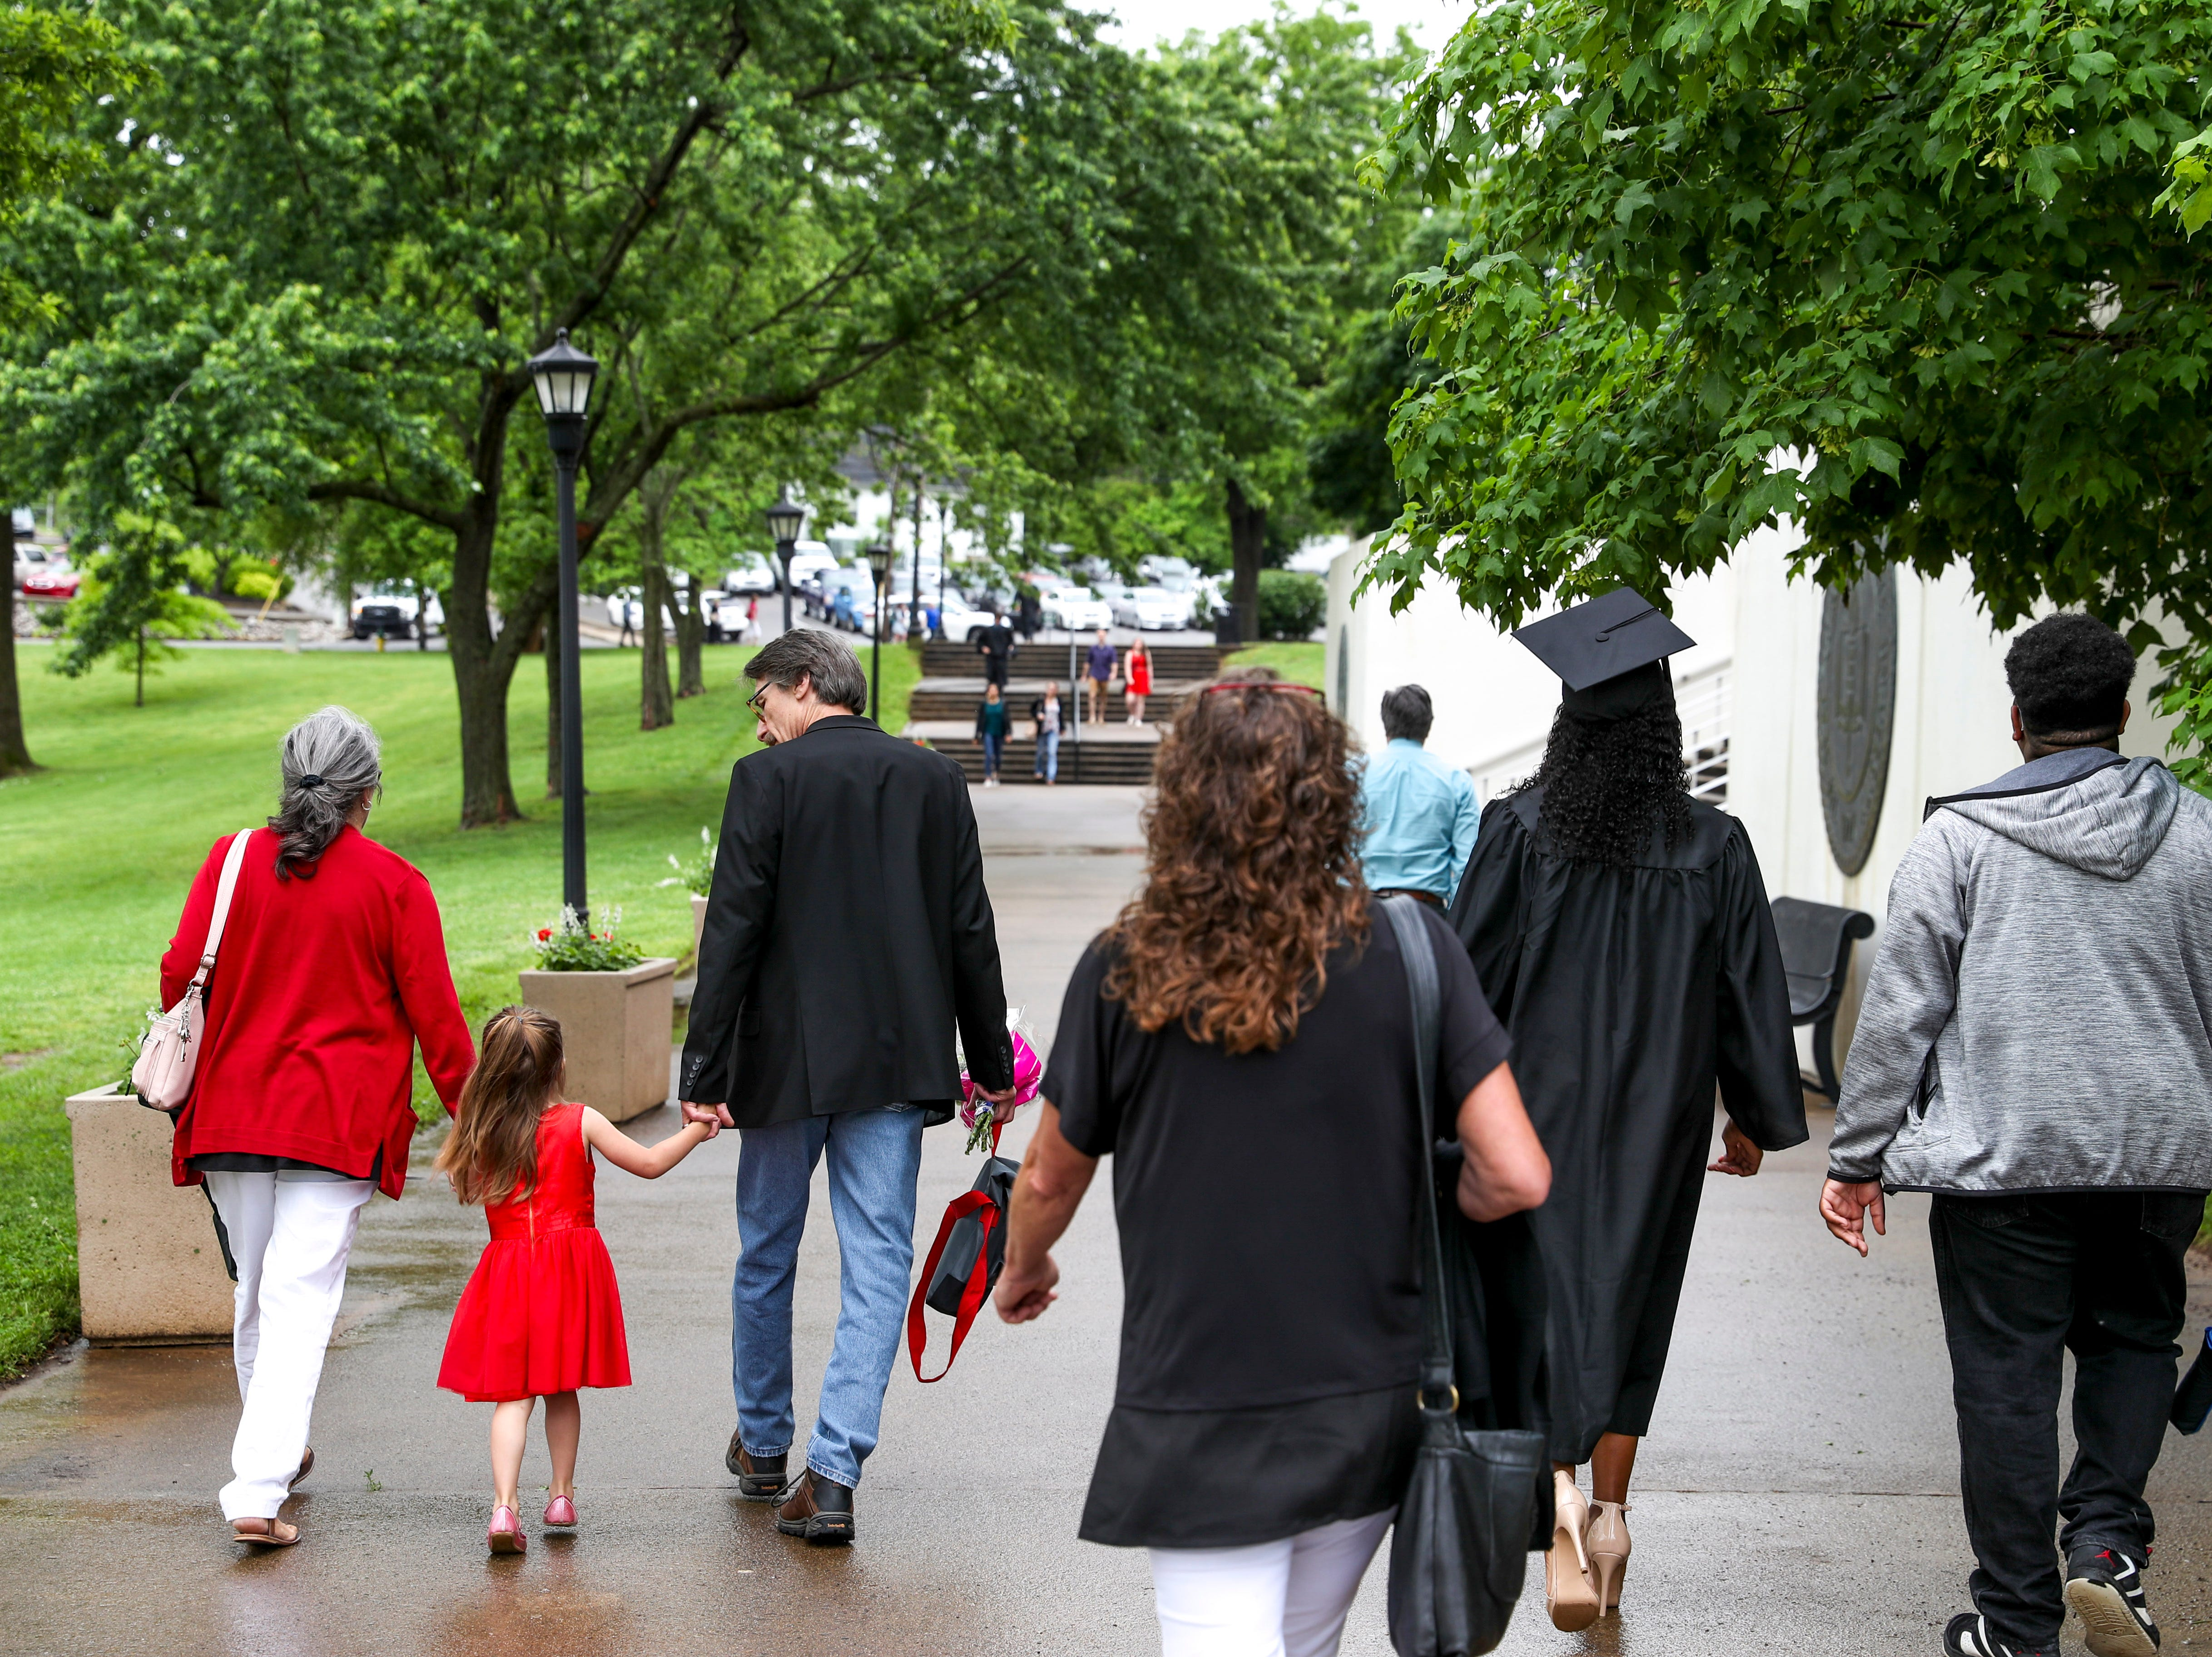 Families and students approach at the Austin Peay spring commencement ceremony 2019 for College of Business and College of STEM at Winfield Dunn Center in Clarksville, Tenn., on Friday, May 3, 2019.